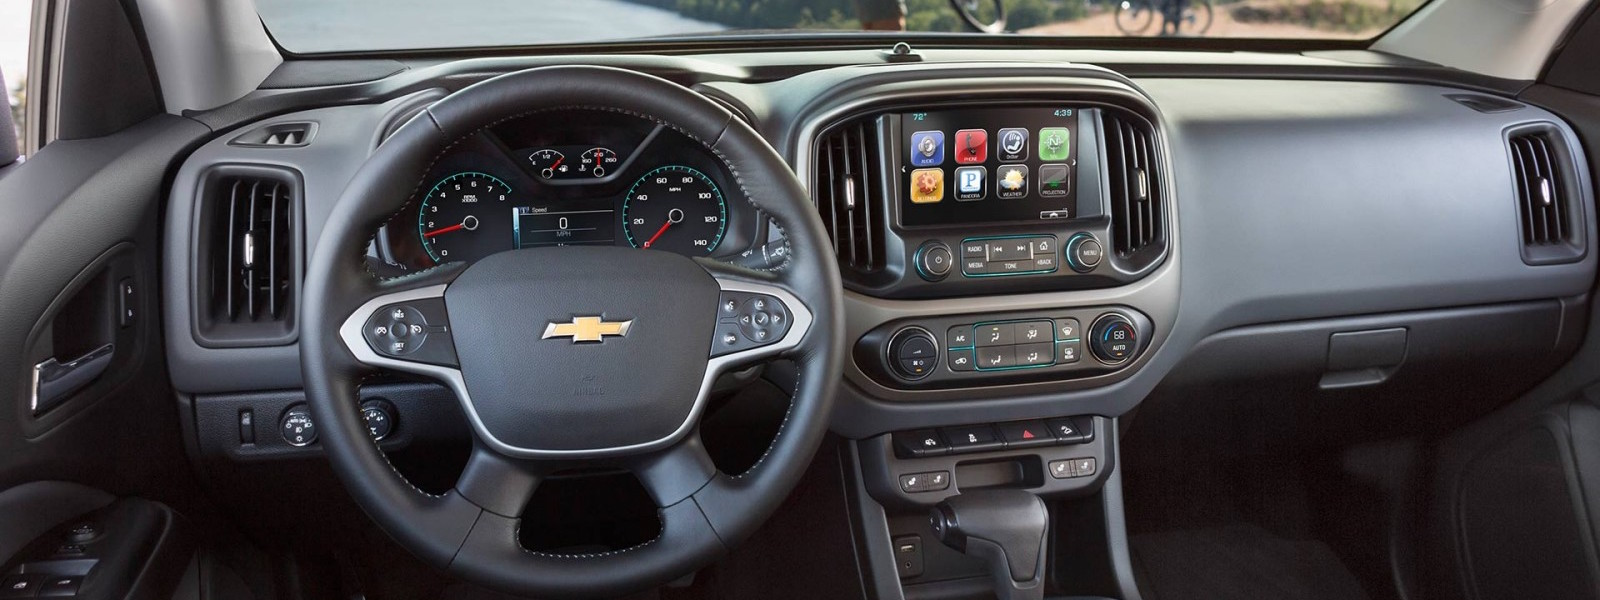 The dashboard of a 2016 Chevy Colorado is shown.